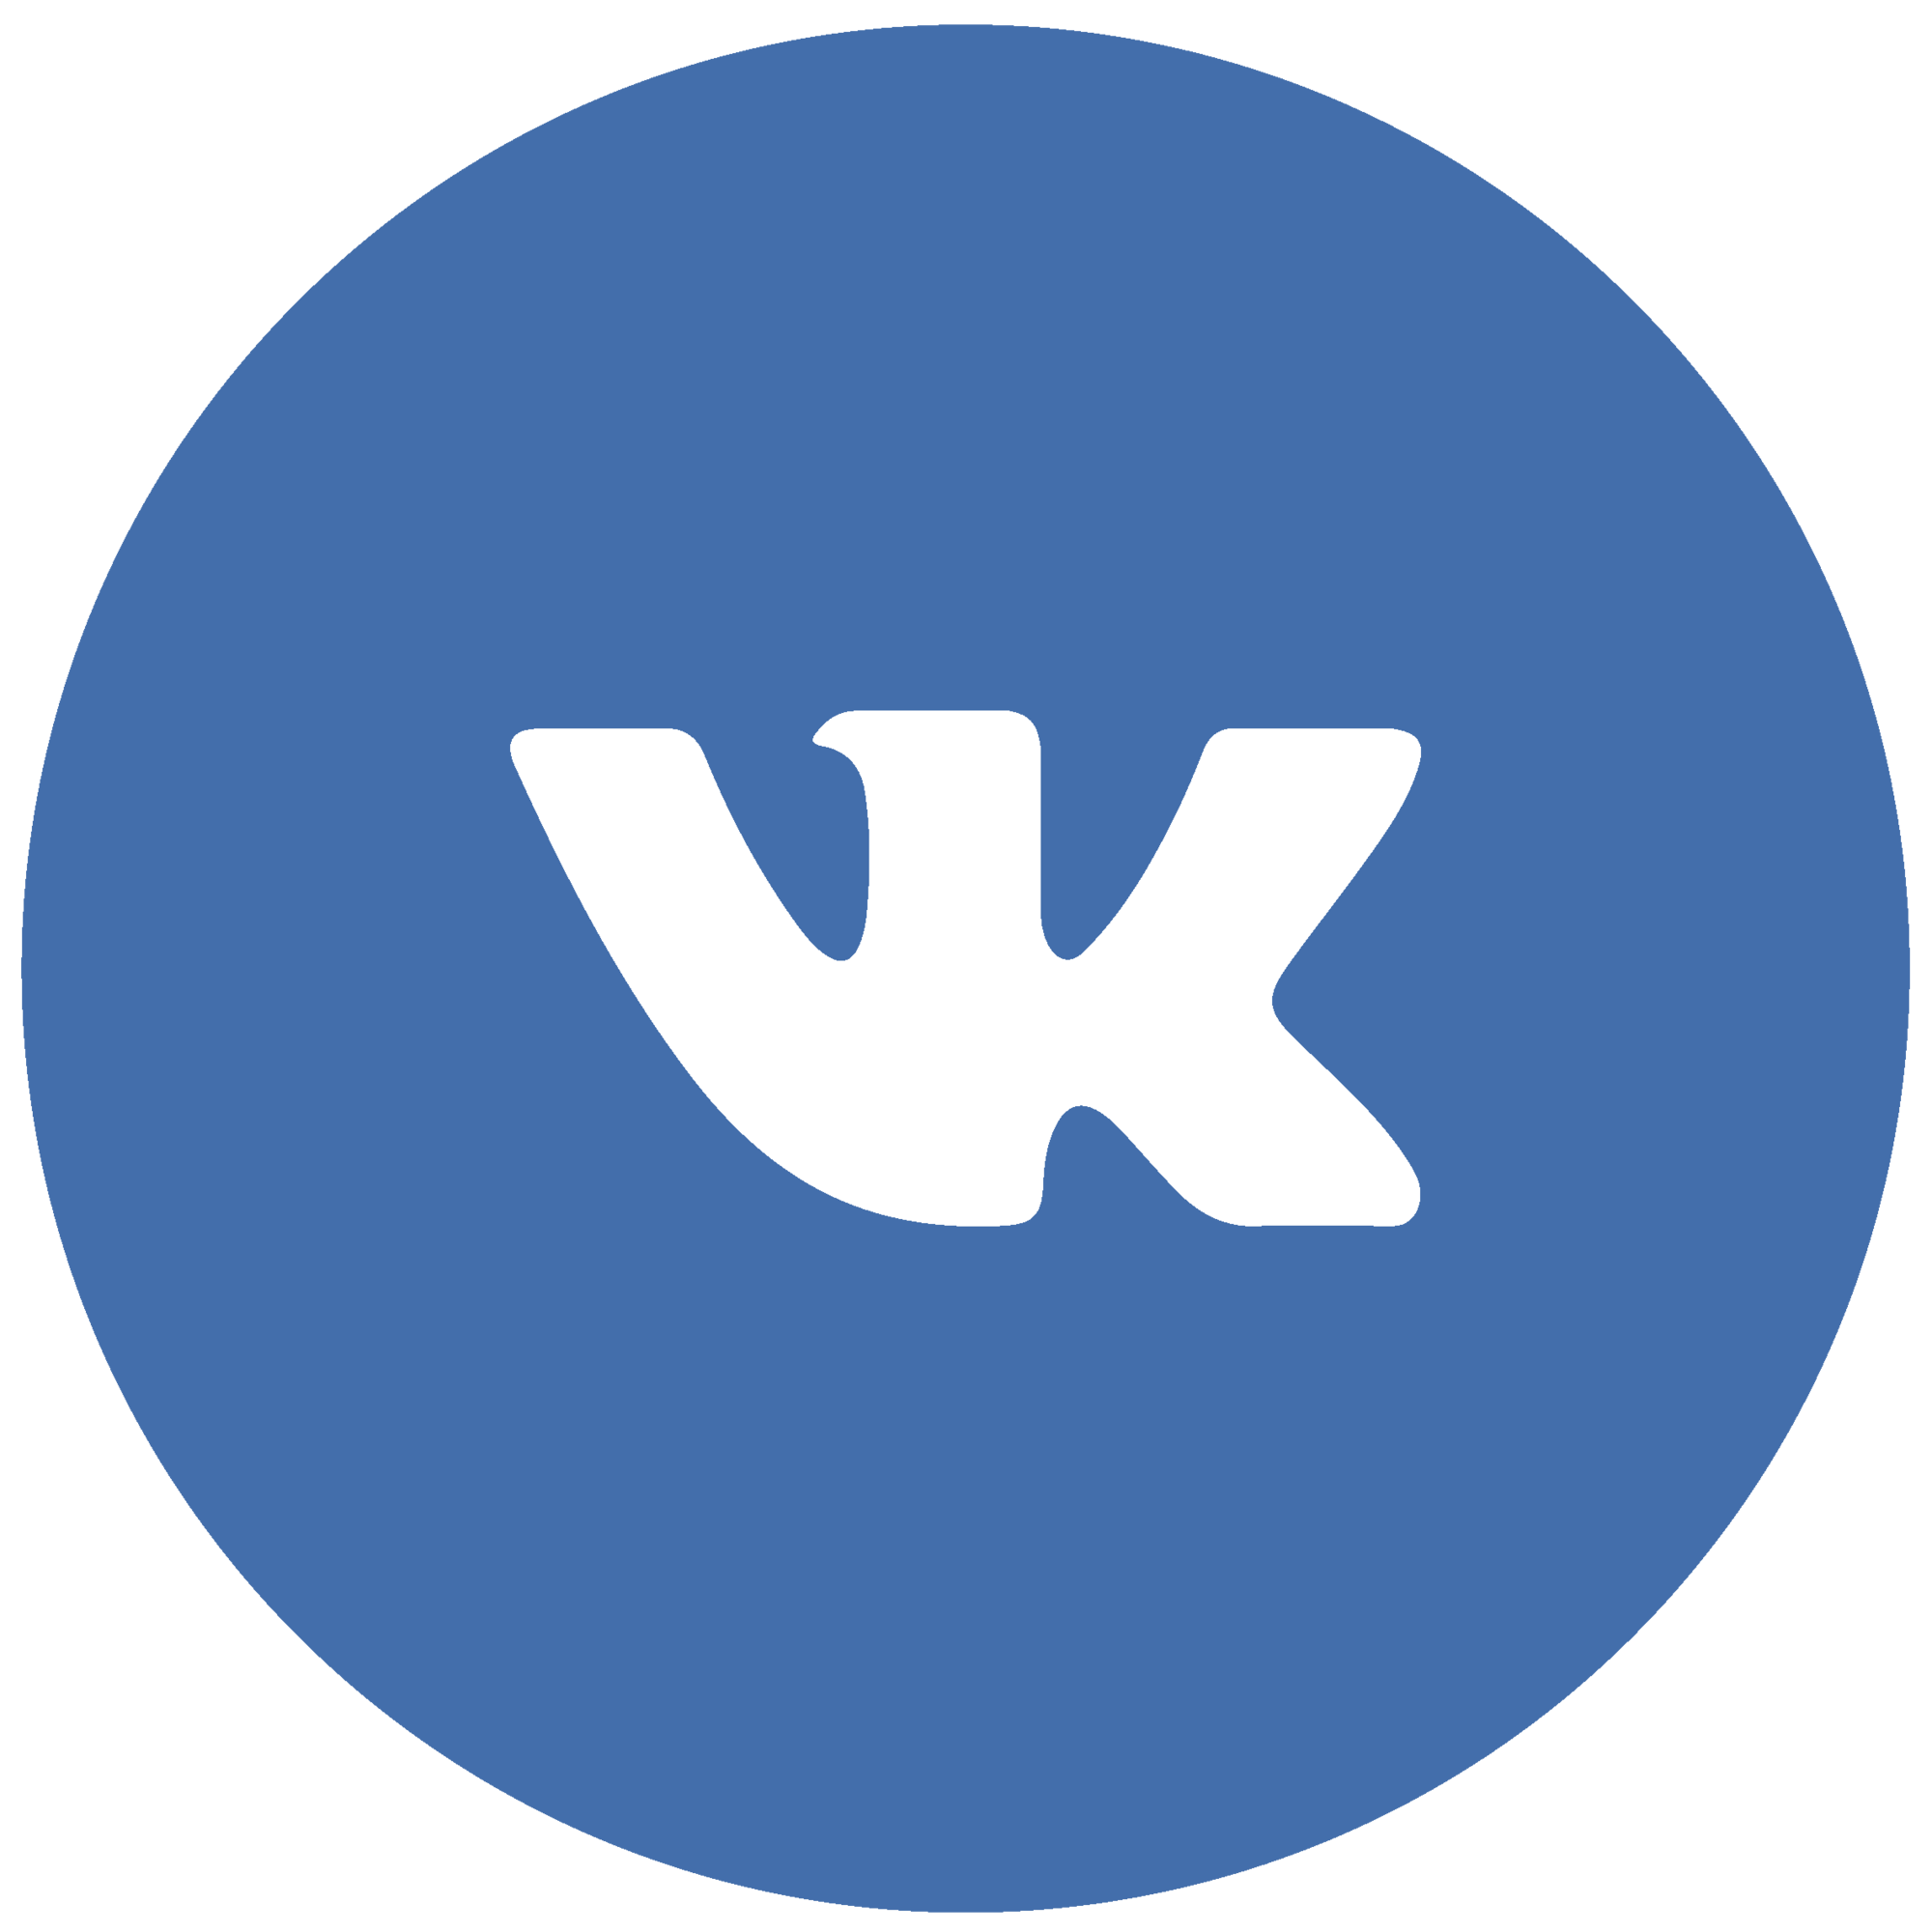 vk-applied-01-01